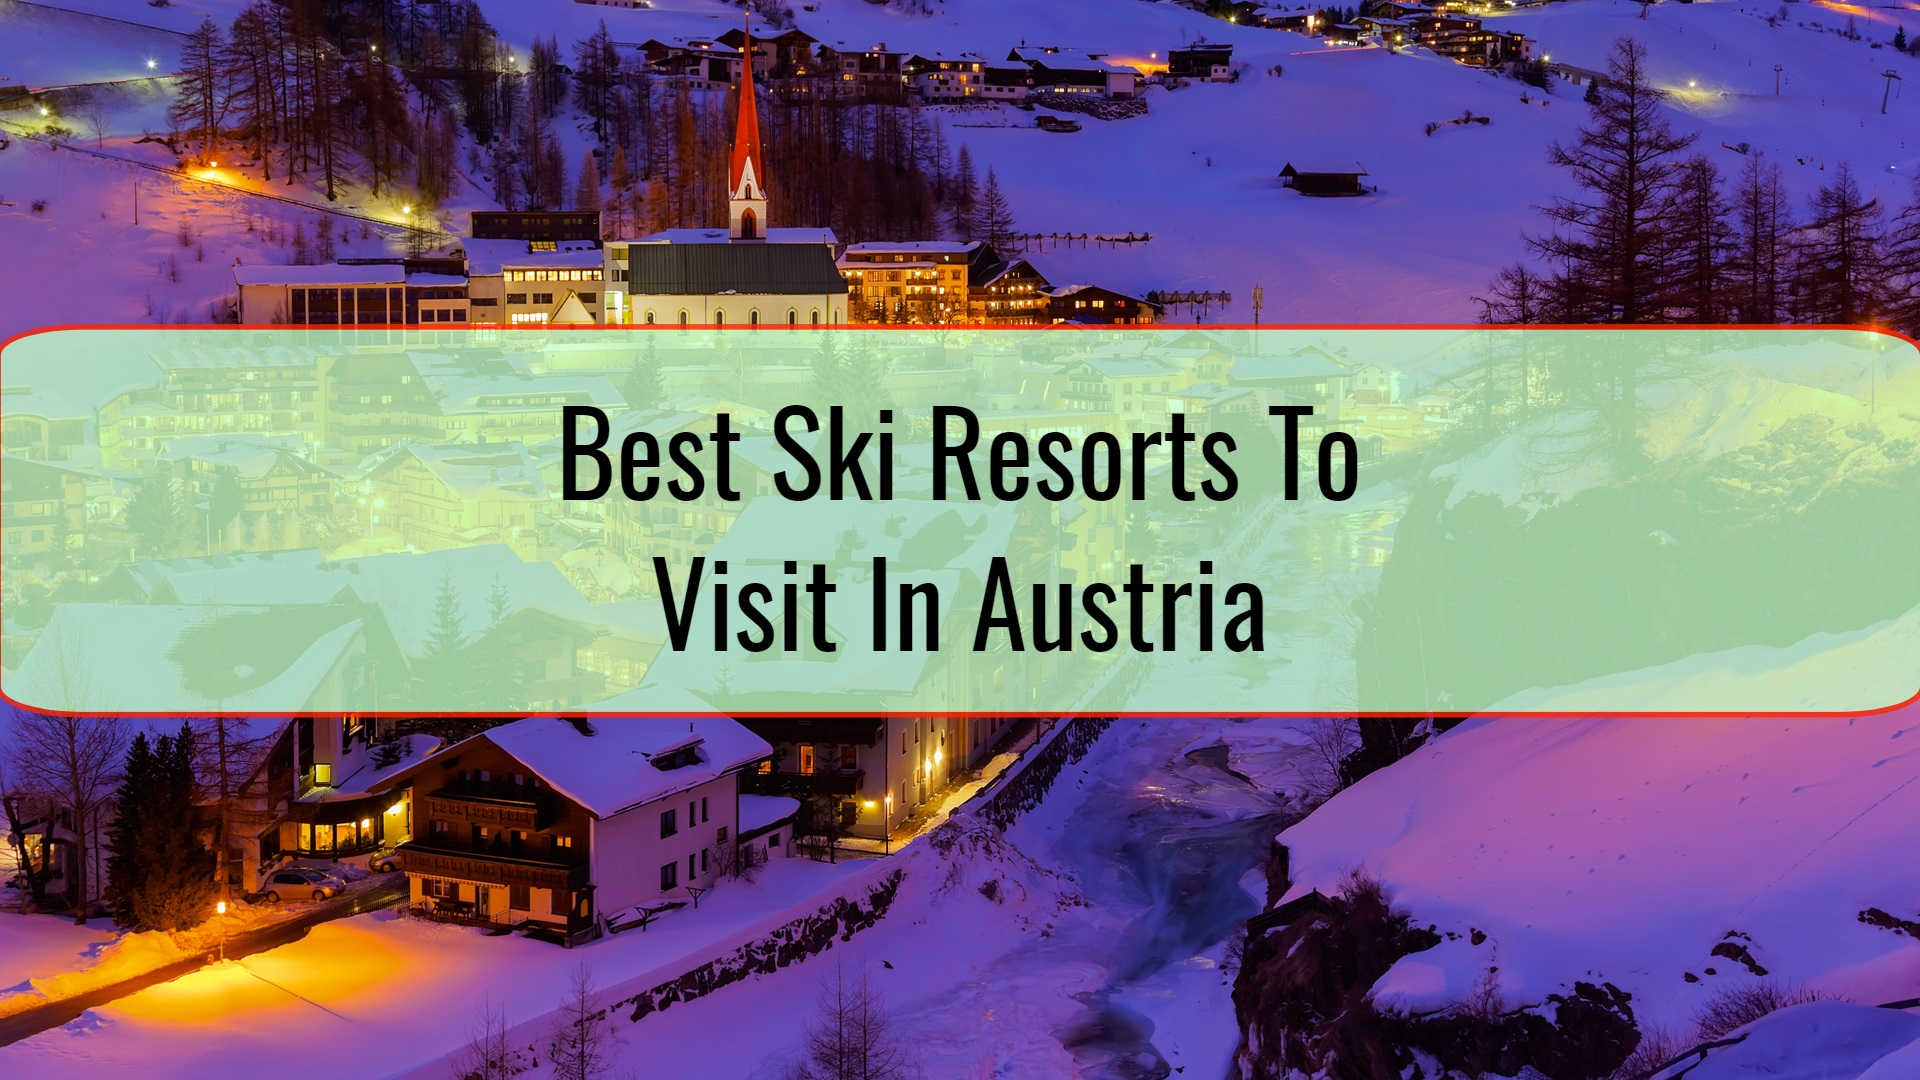 Best Ski Resorts To Visit In Austria